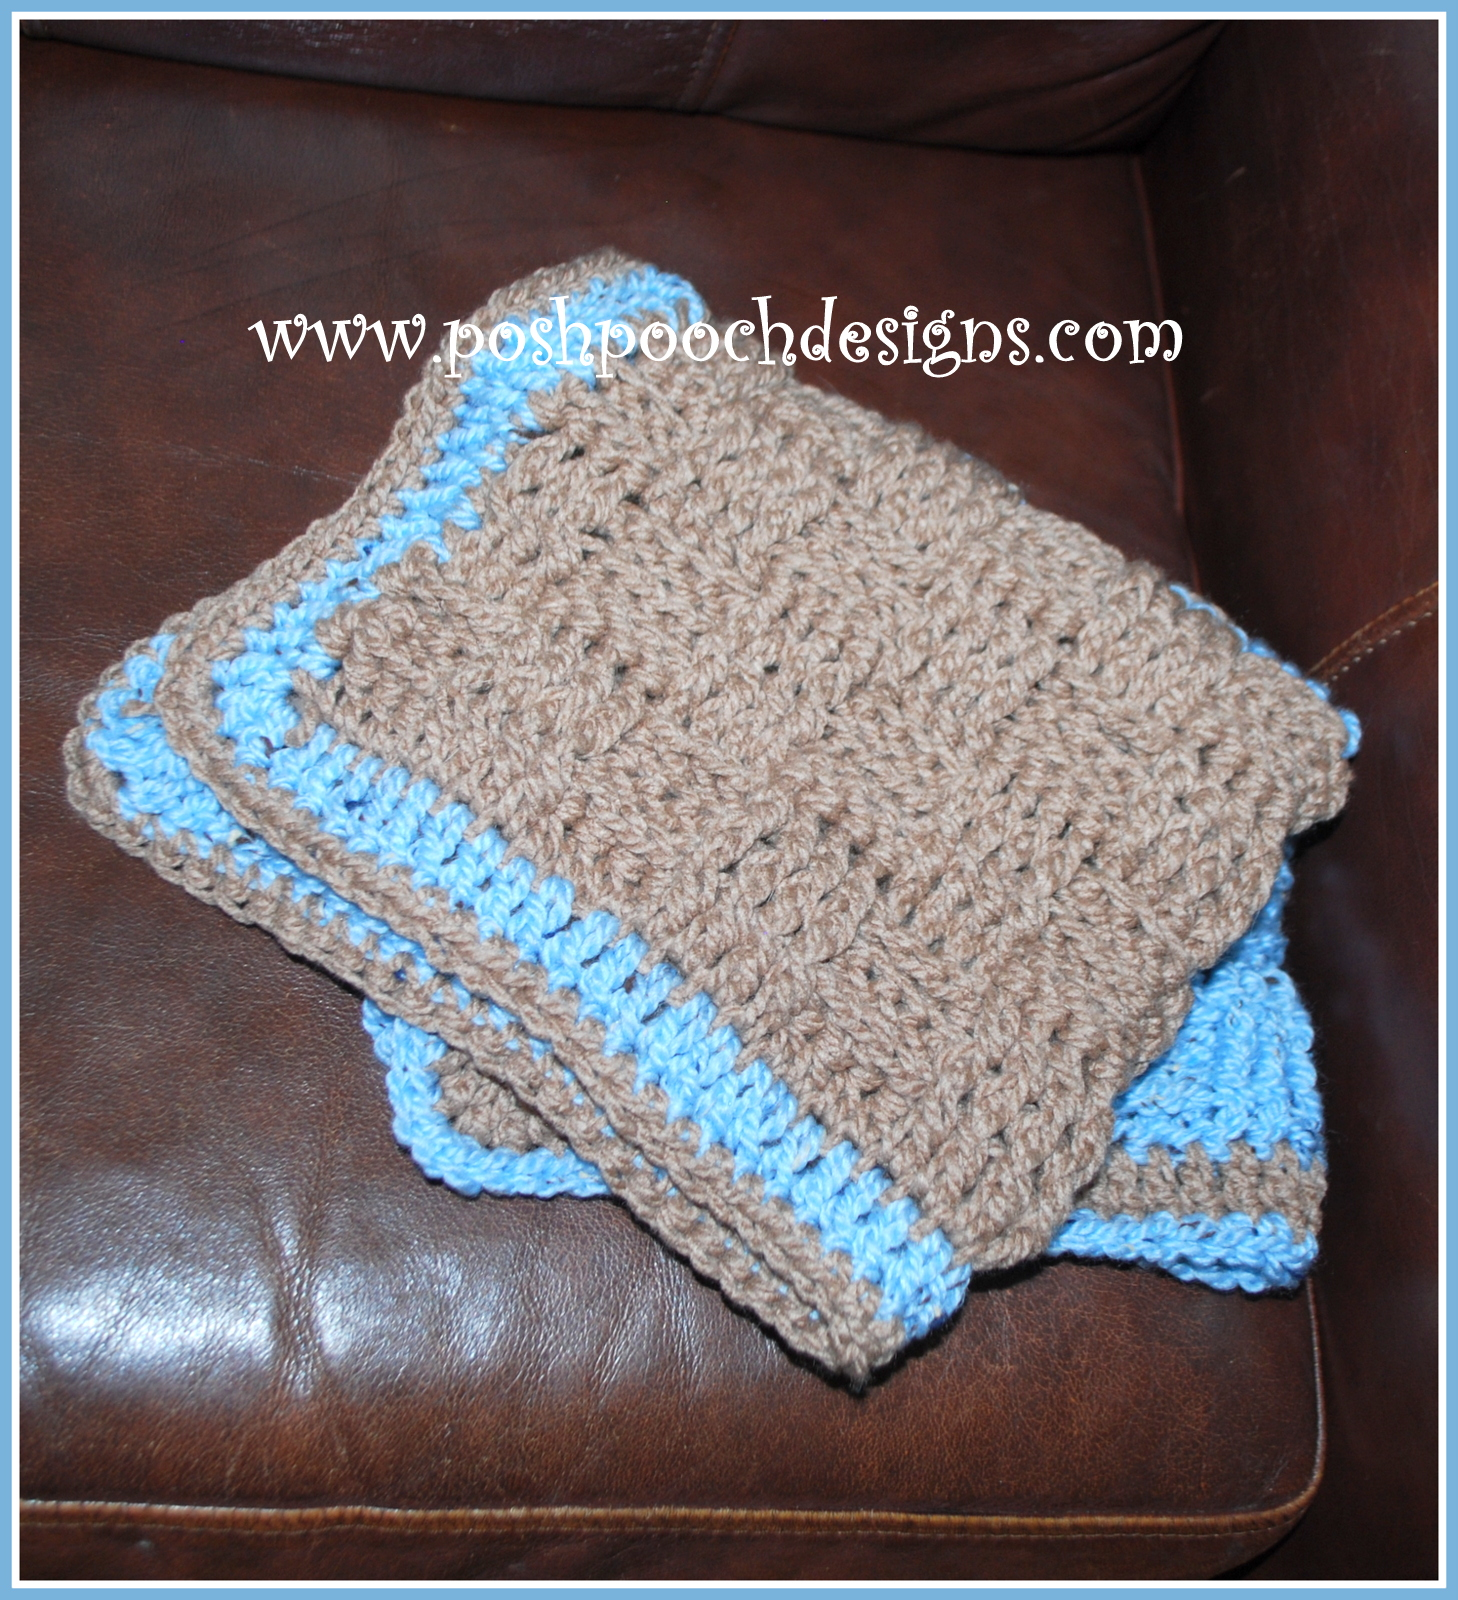 Crochet Pattern For Dog Blanket : Posh Pooch Designs Dog Clothes: Crochet pattern for a Dog ...